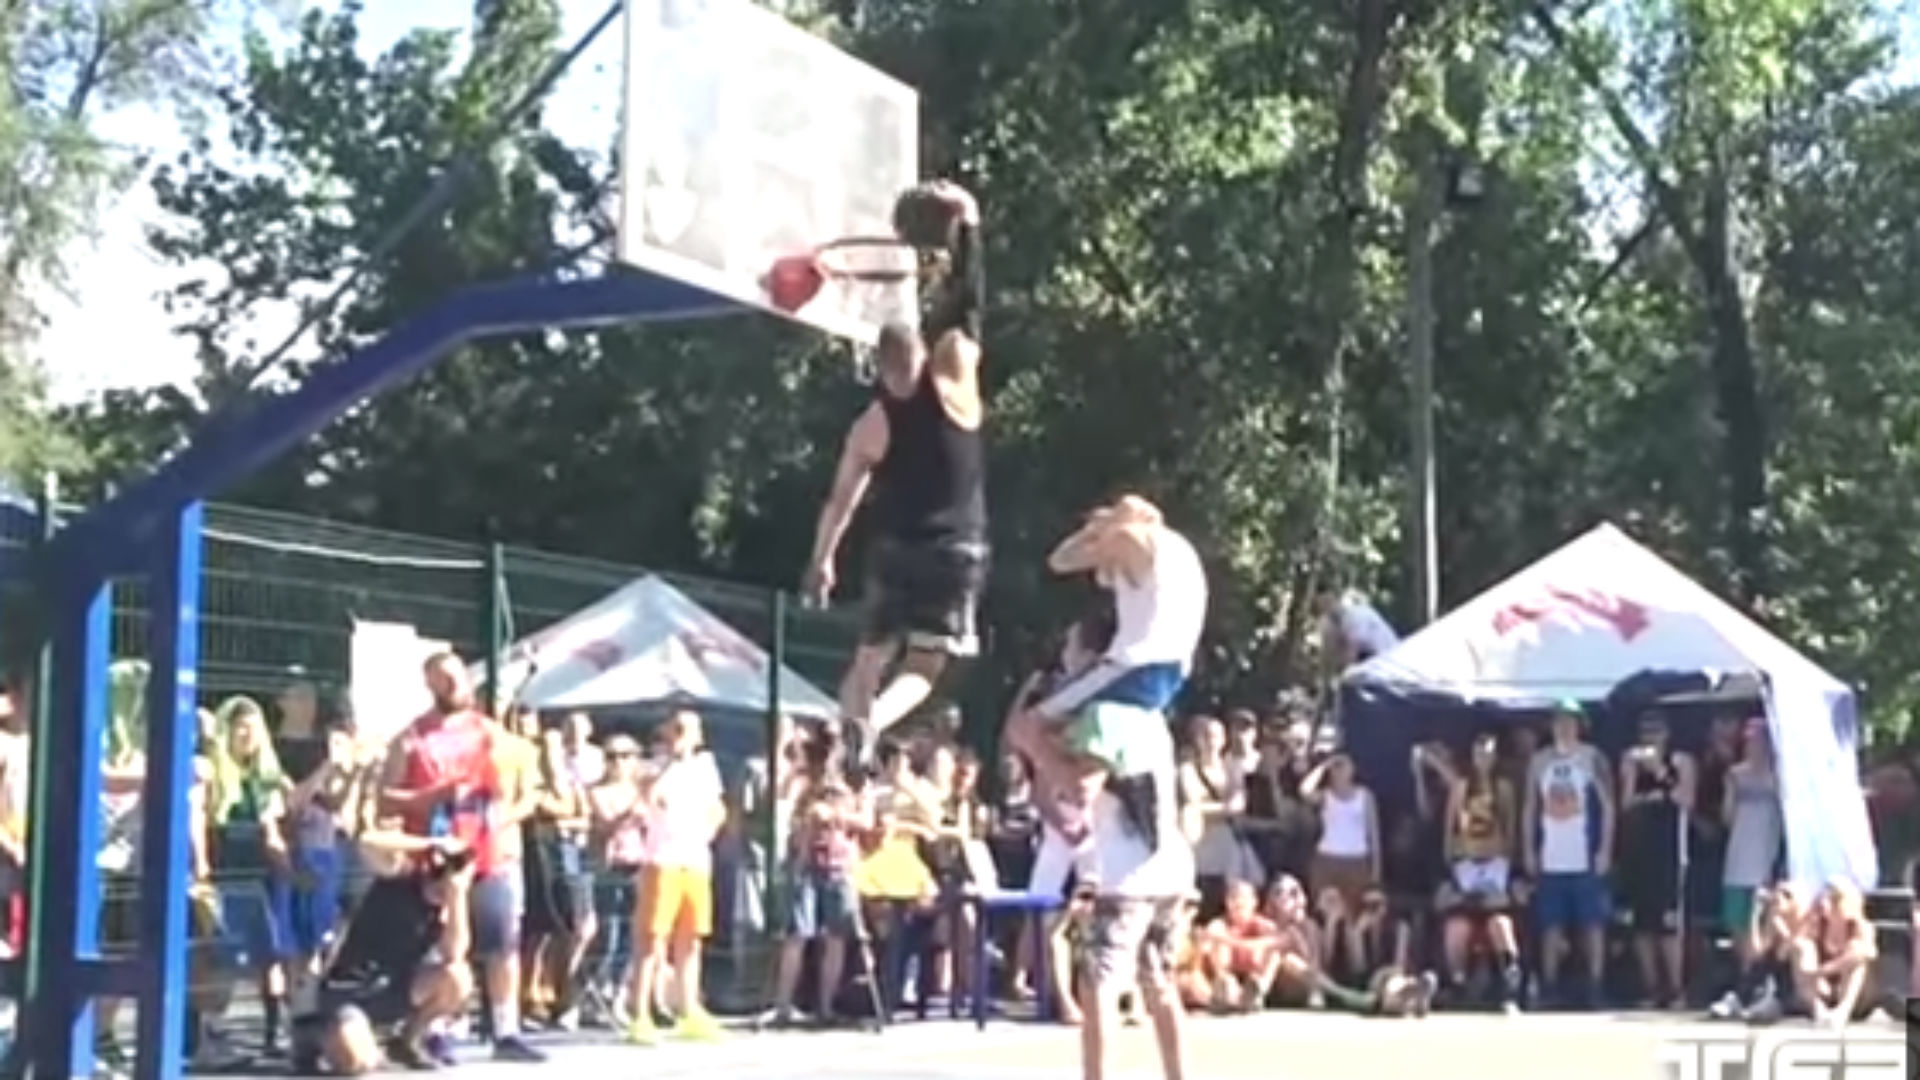 A 5-9 dunker jumps over two people for 'Triple Up' throwdown